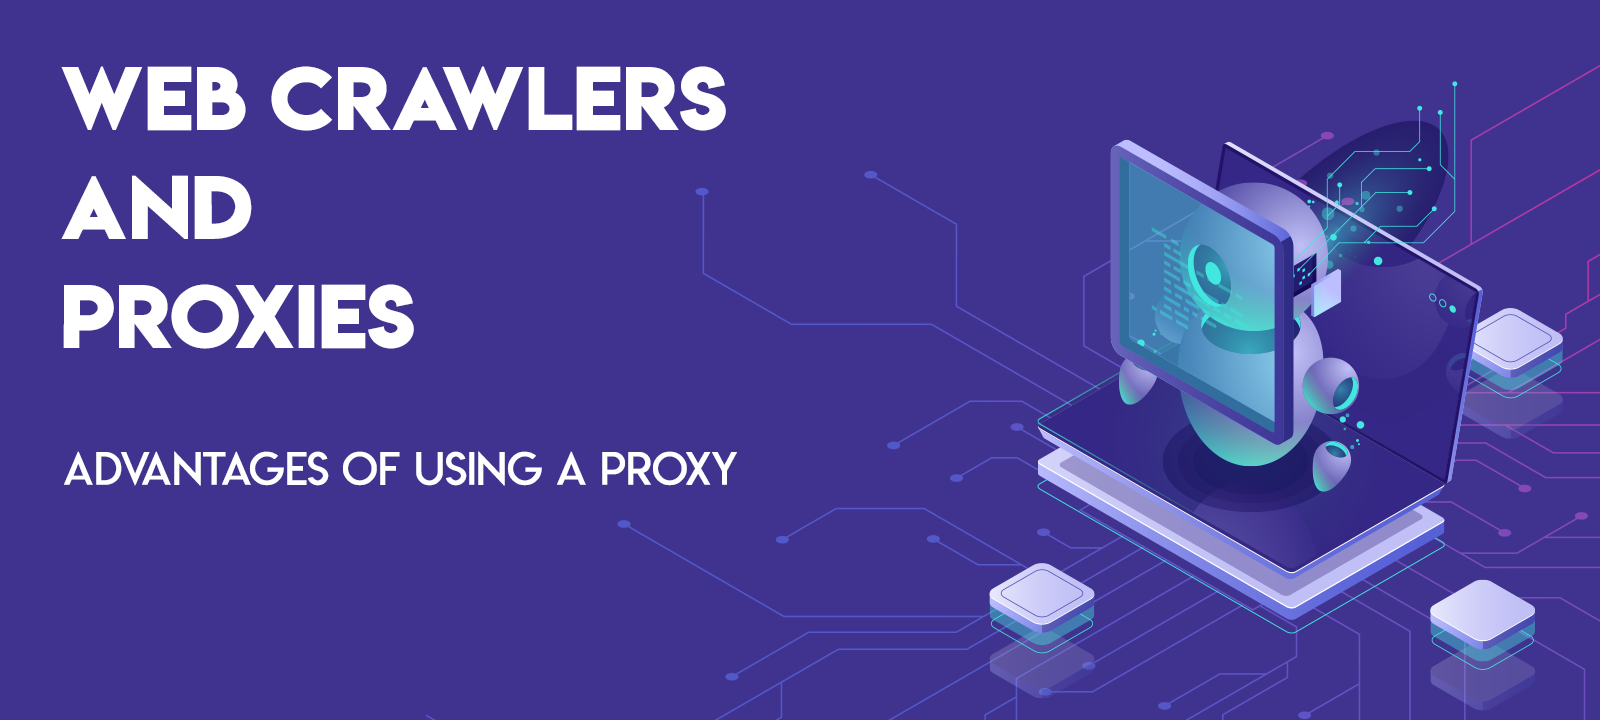 Web Crawlers and Proxies: How to Use Proxies with PHP Web Crawlers